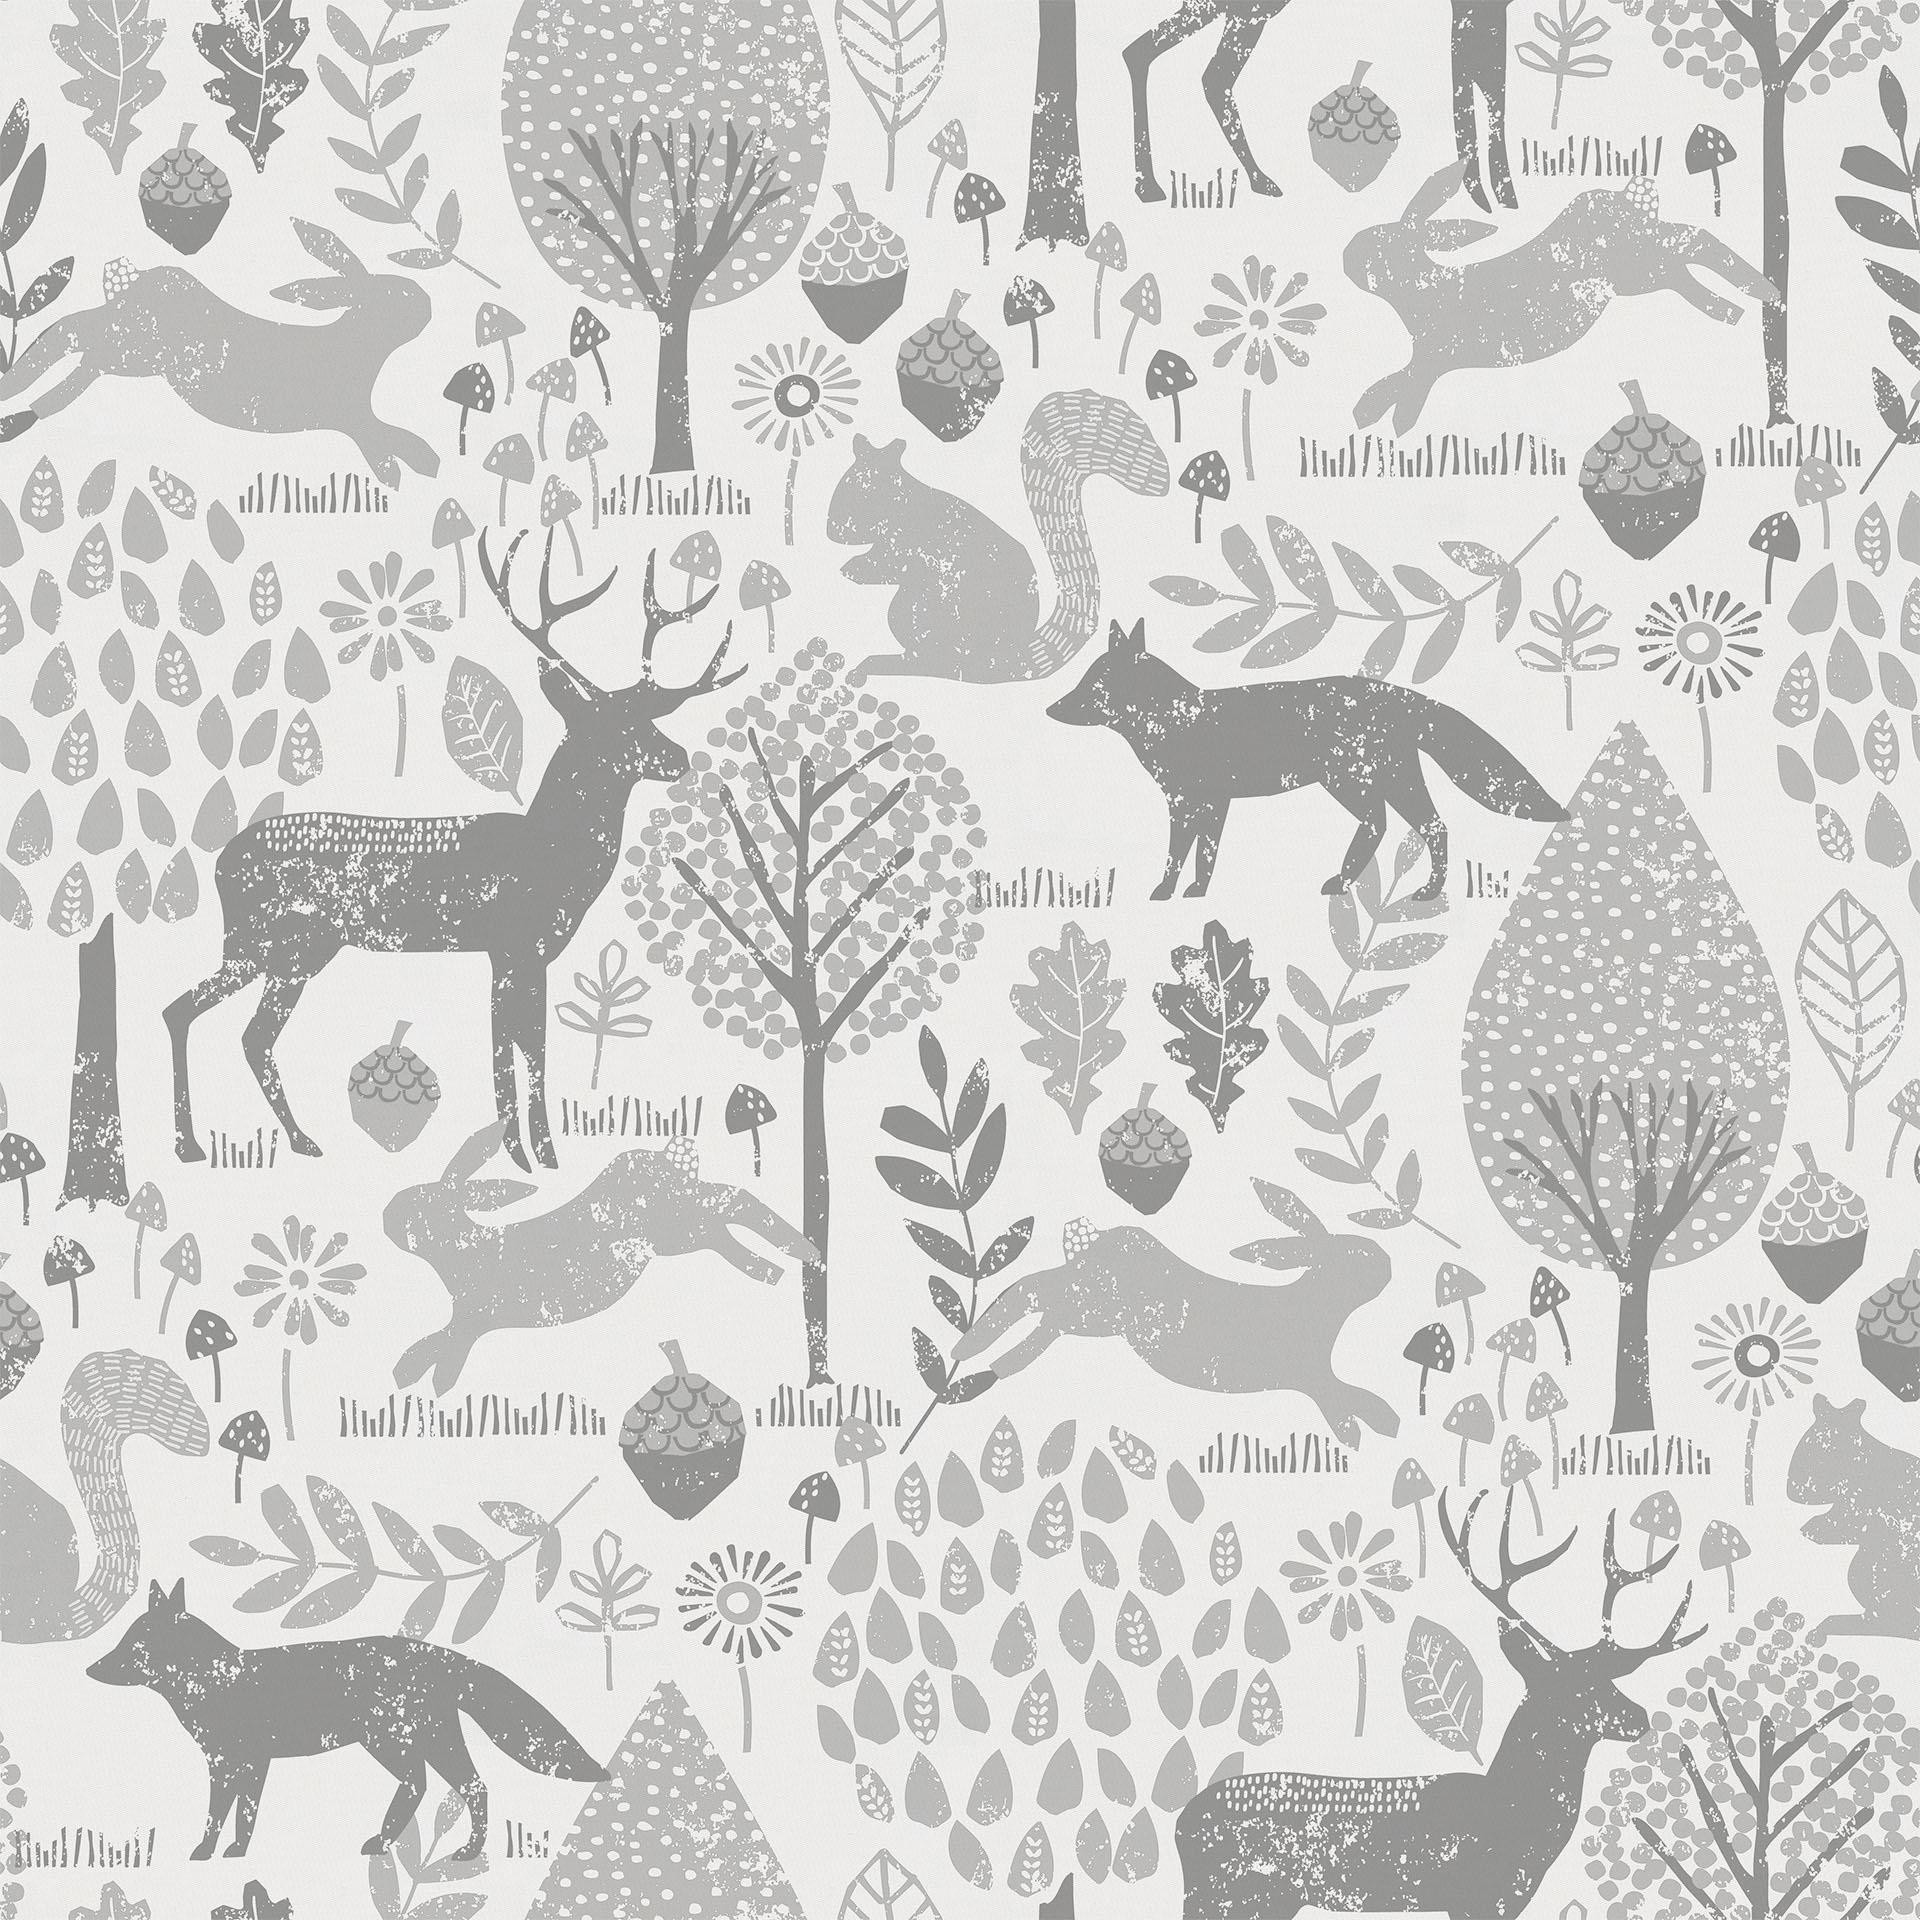 1920x1920 Gray Woodland Animals Fabric by the Yard